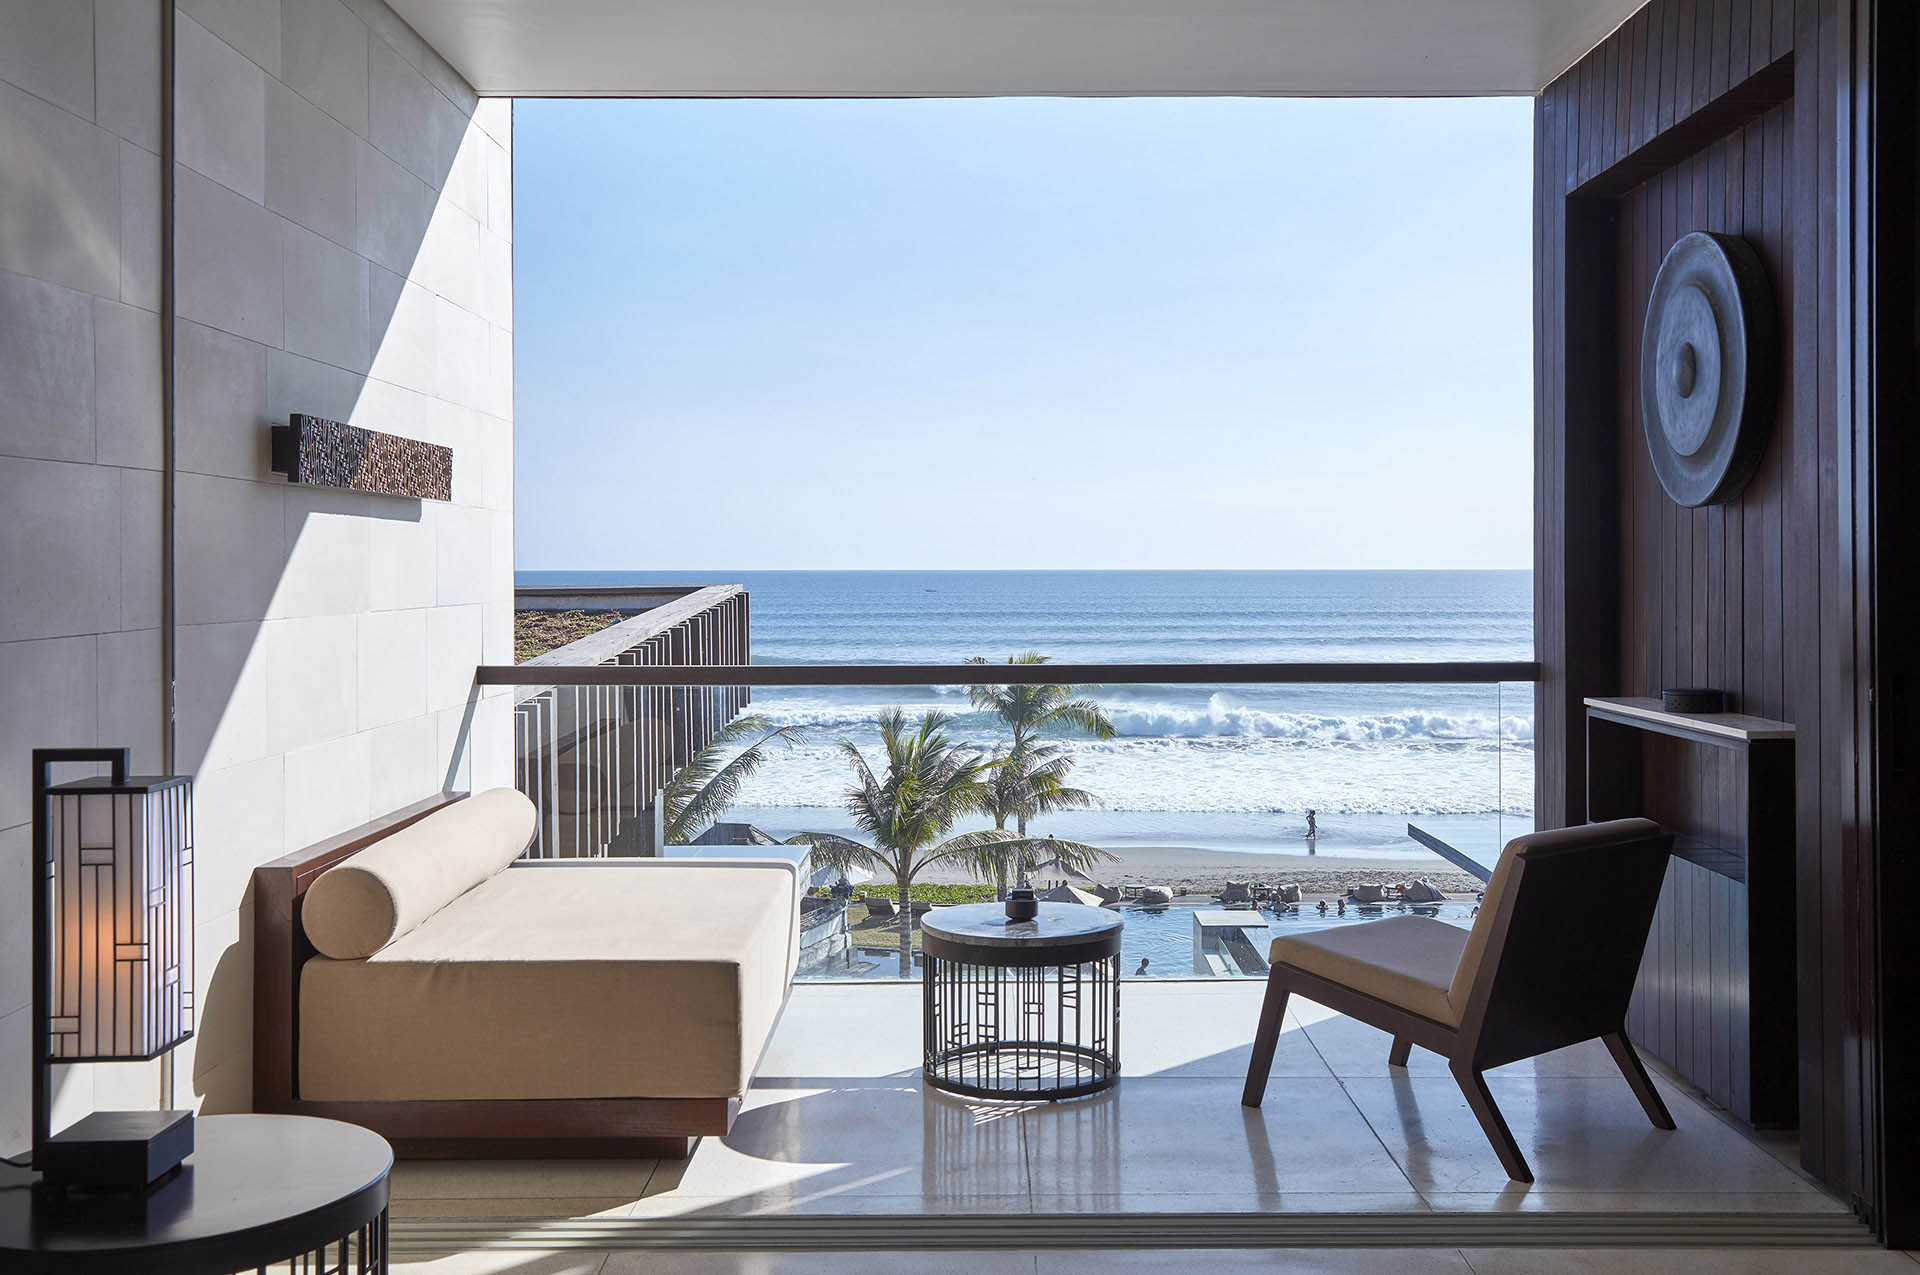 Alila Ocean View Suite - Balcony